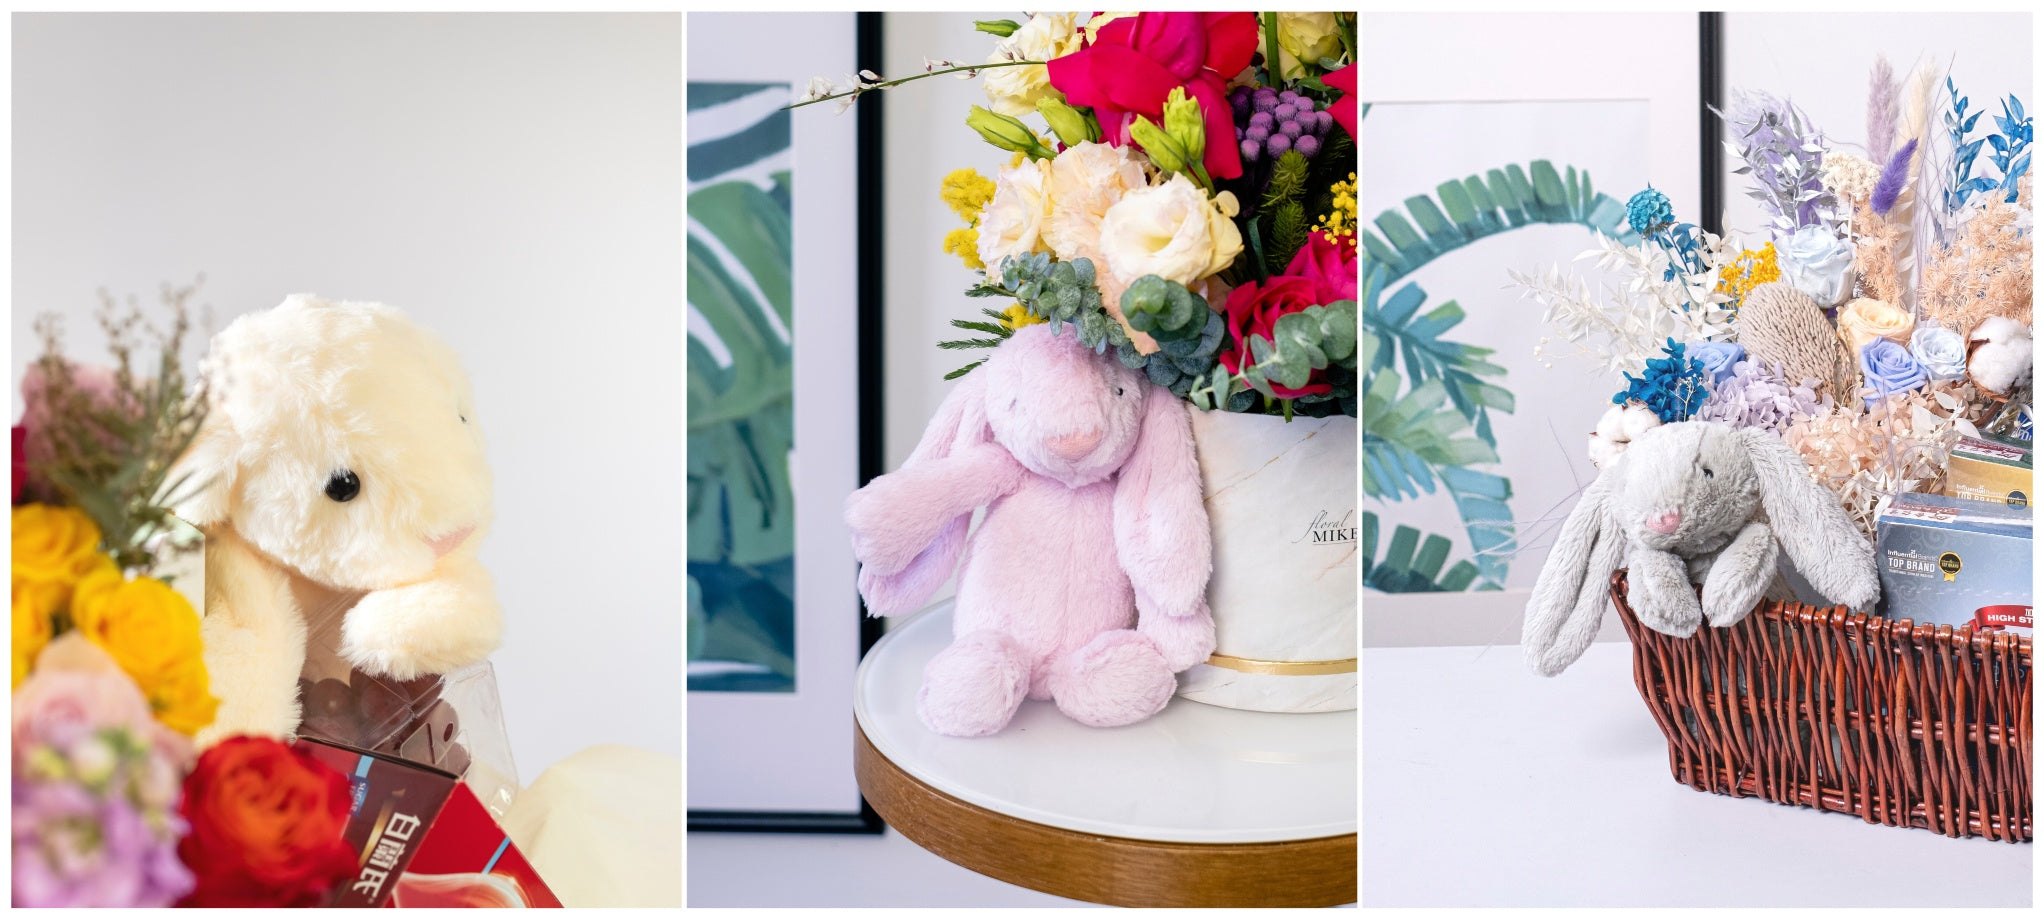 Floral gifting add ons with rabbit teddy bears by top bespoke florist floral mikelle